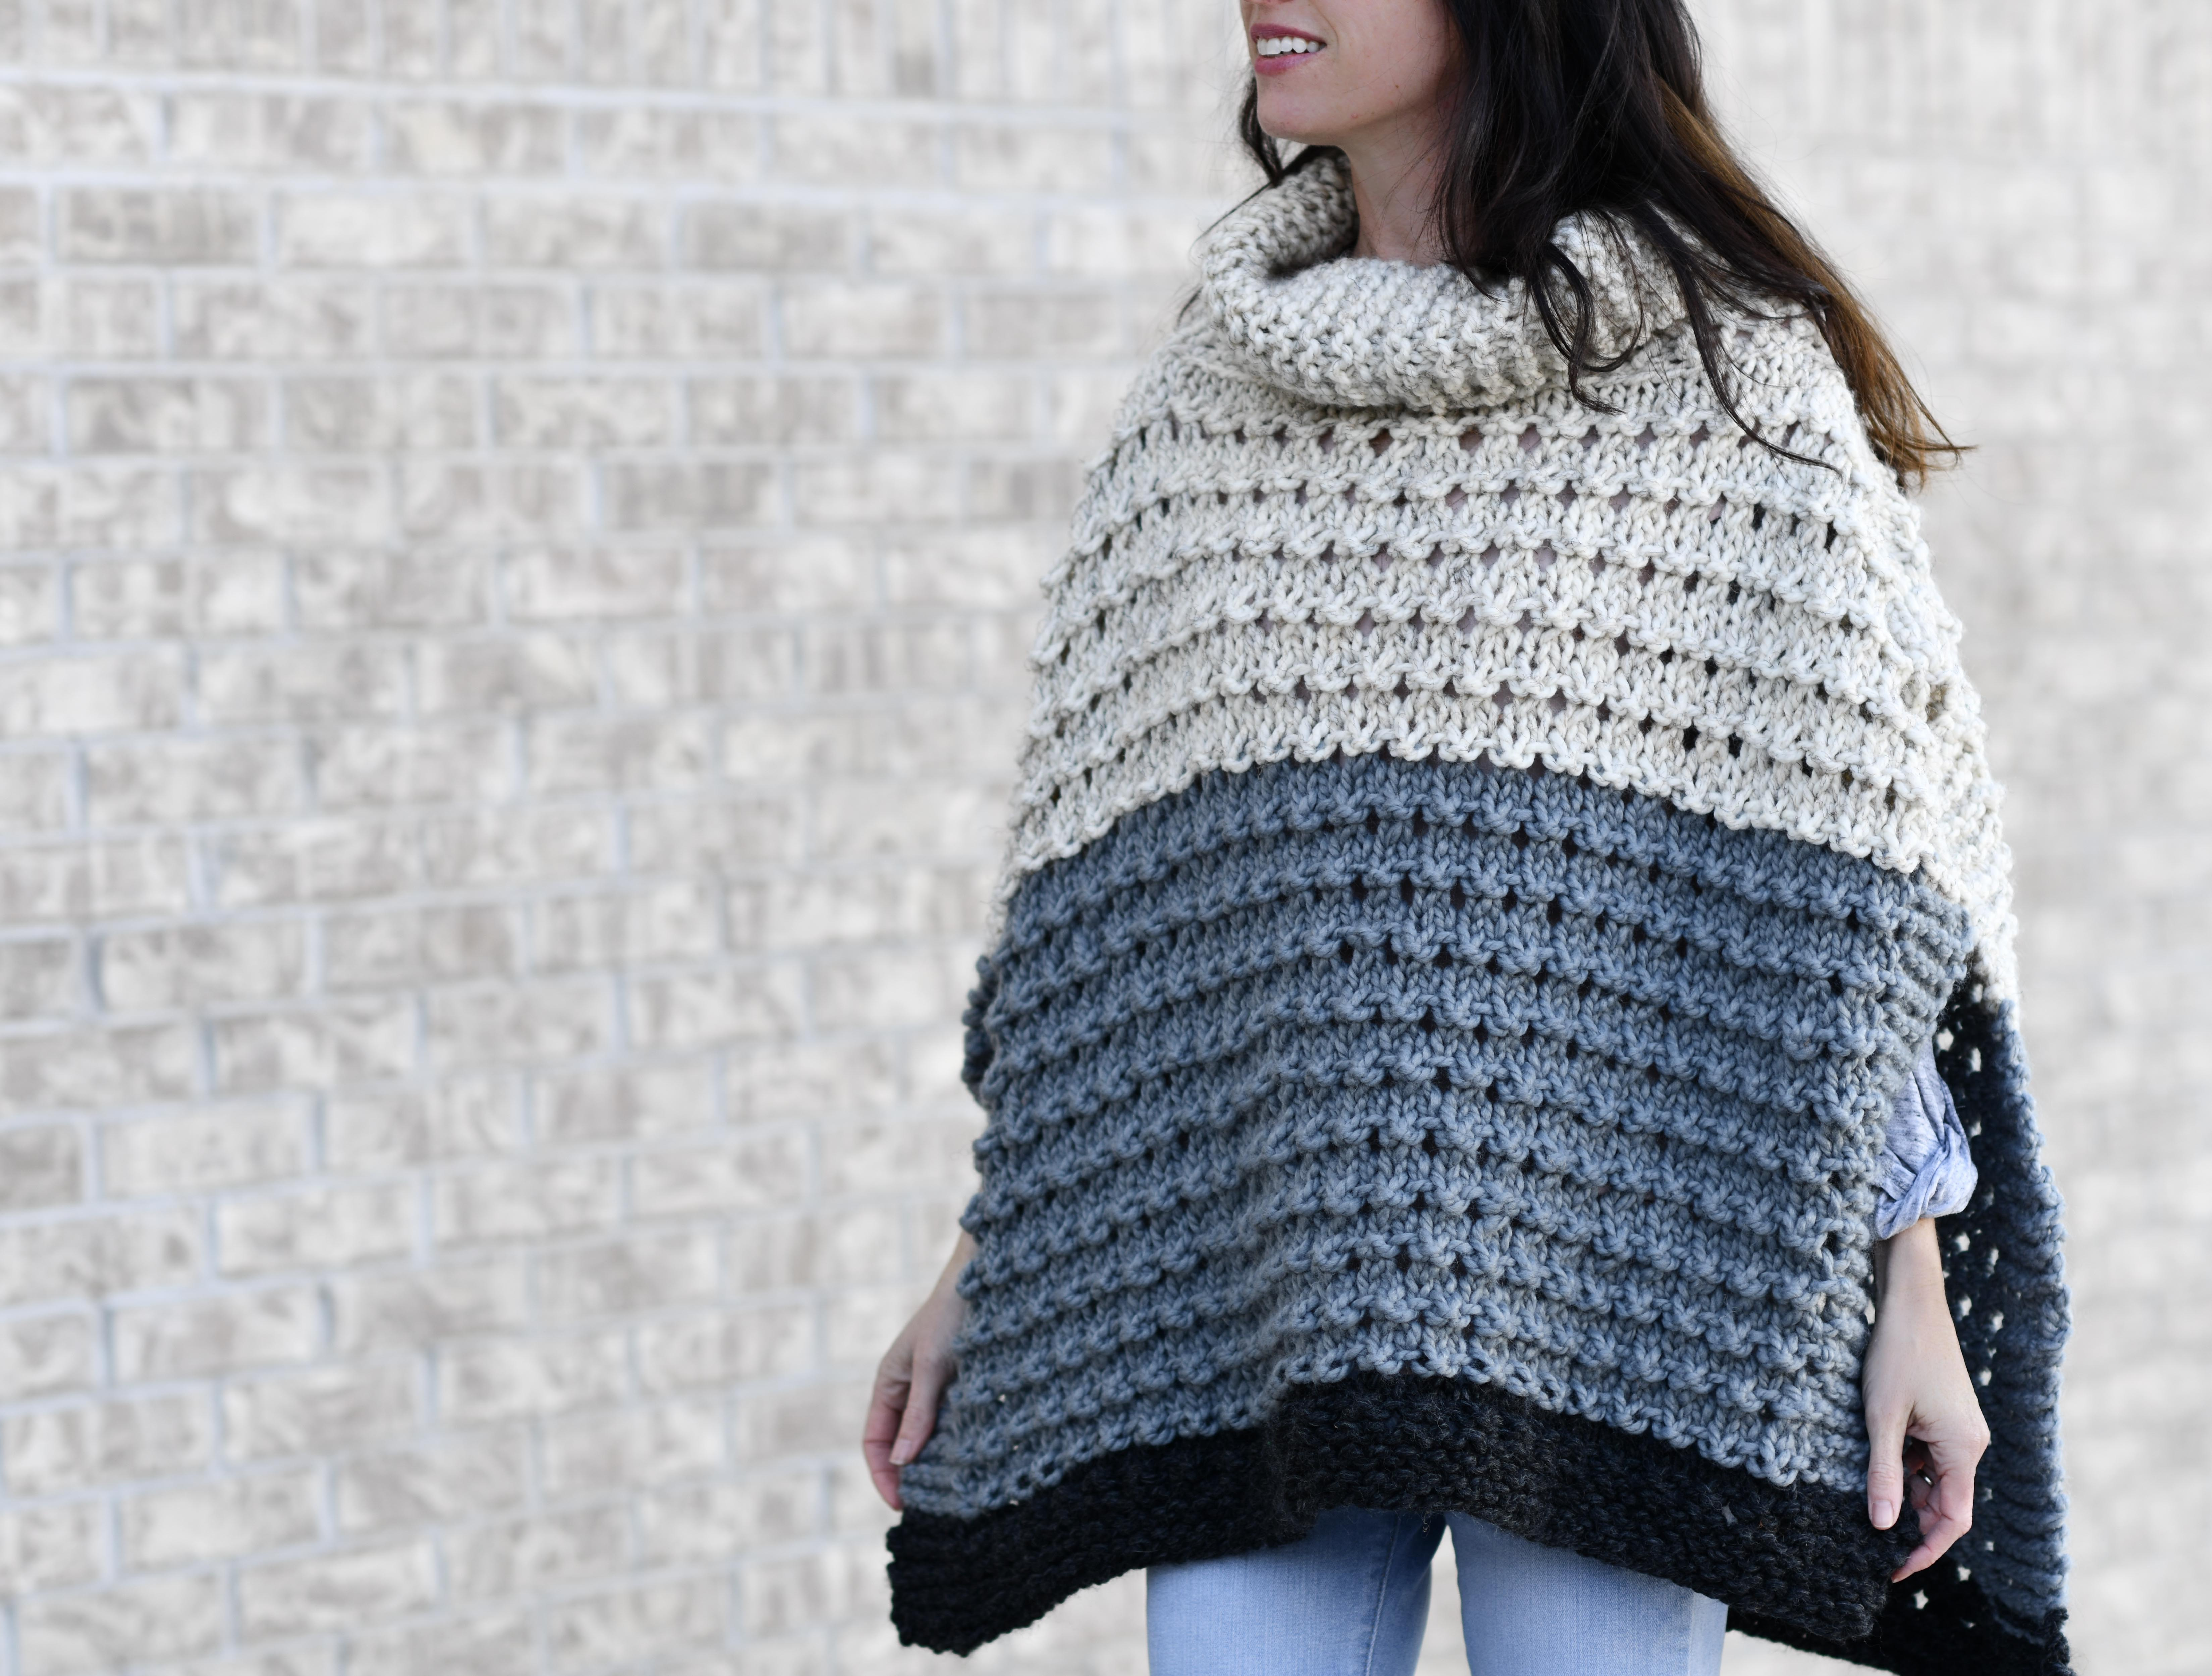 Vail Ski Poncho Knitting Pattern – Mama In A Stitch